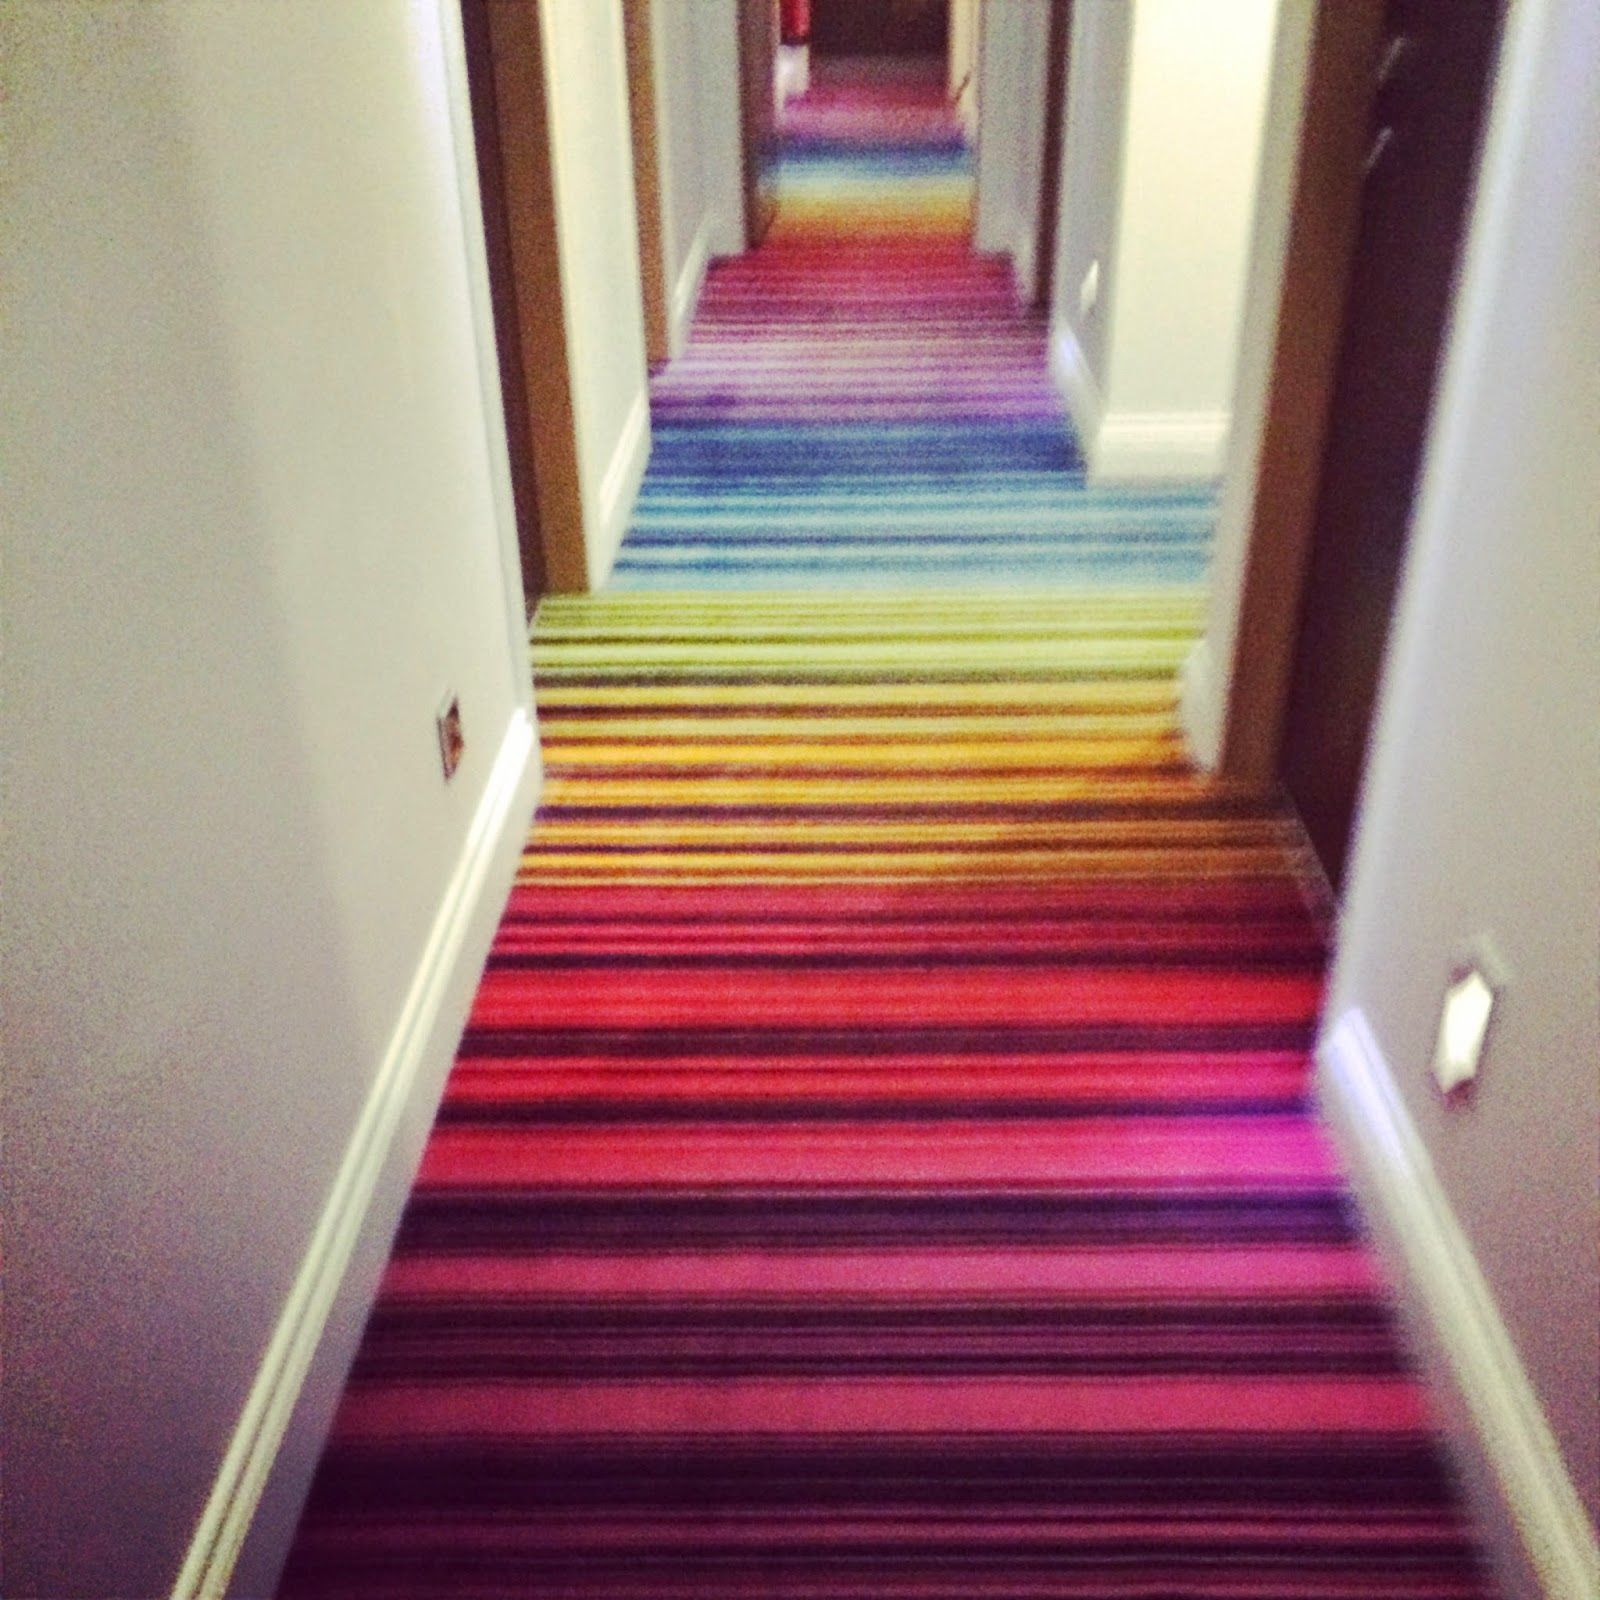 25 Unique Staircase Designs To Take Center Stage In Your Home: Rainbow Stair Carpet - Google Search